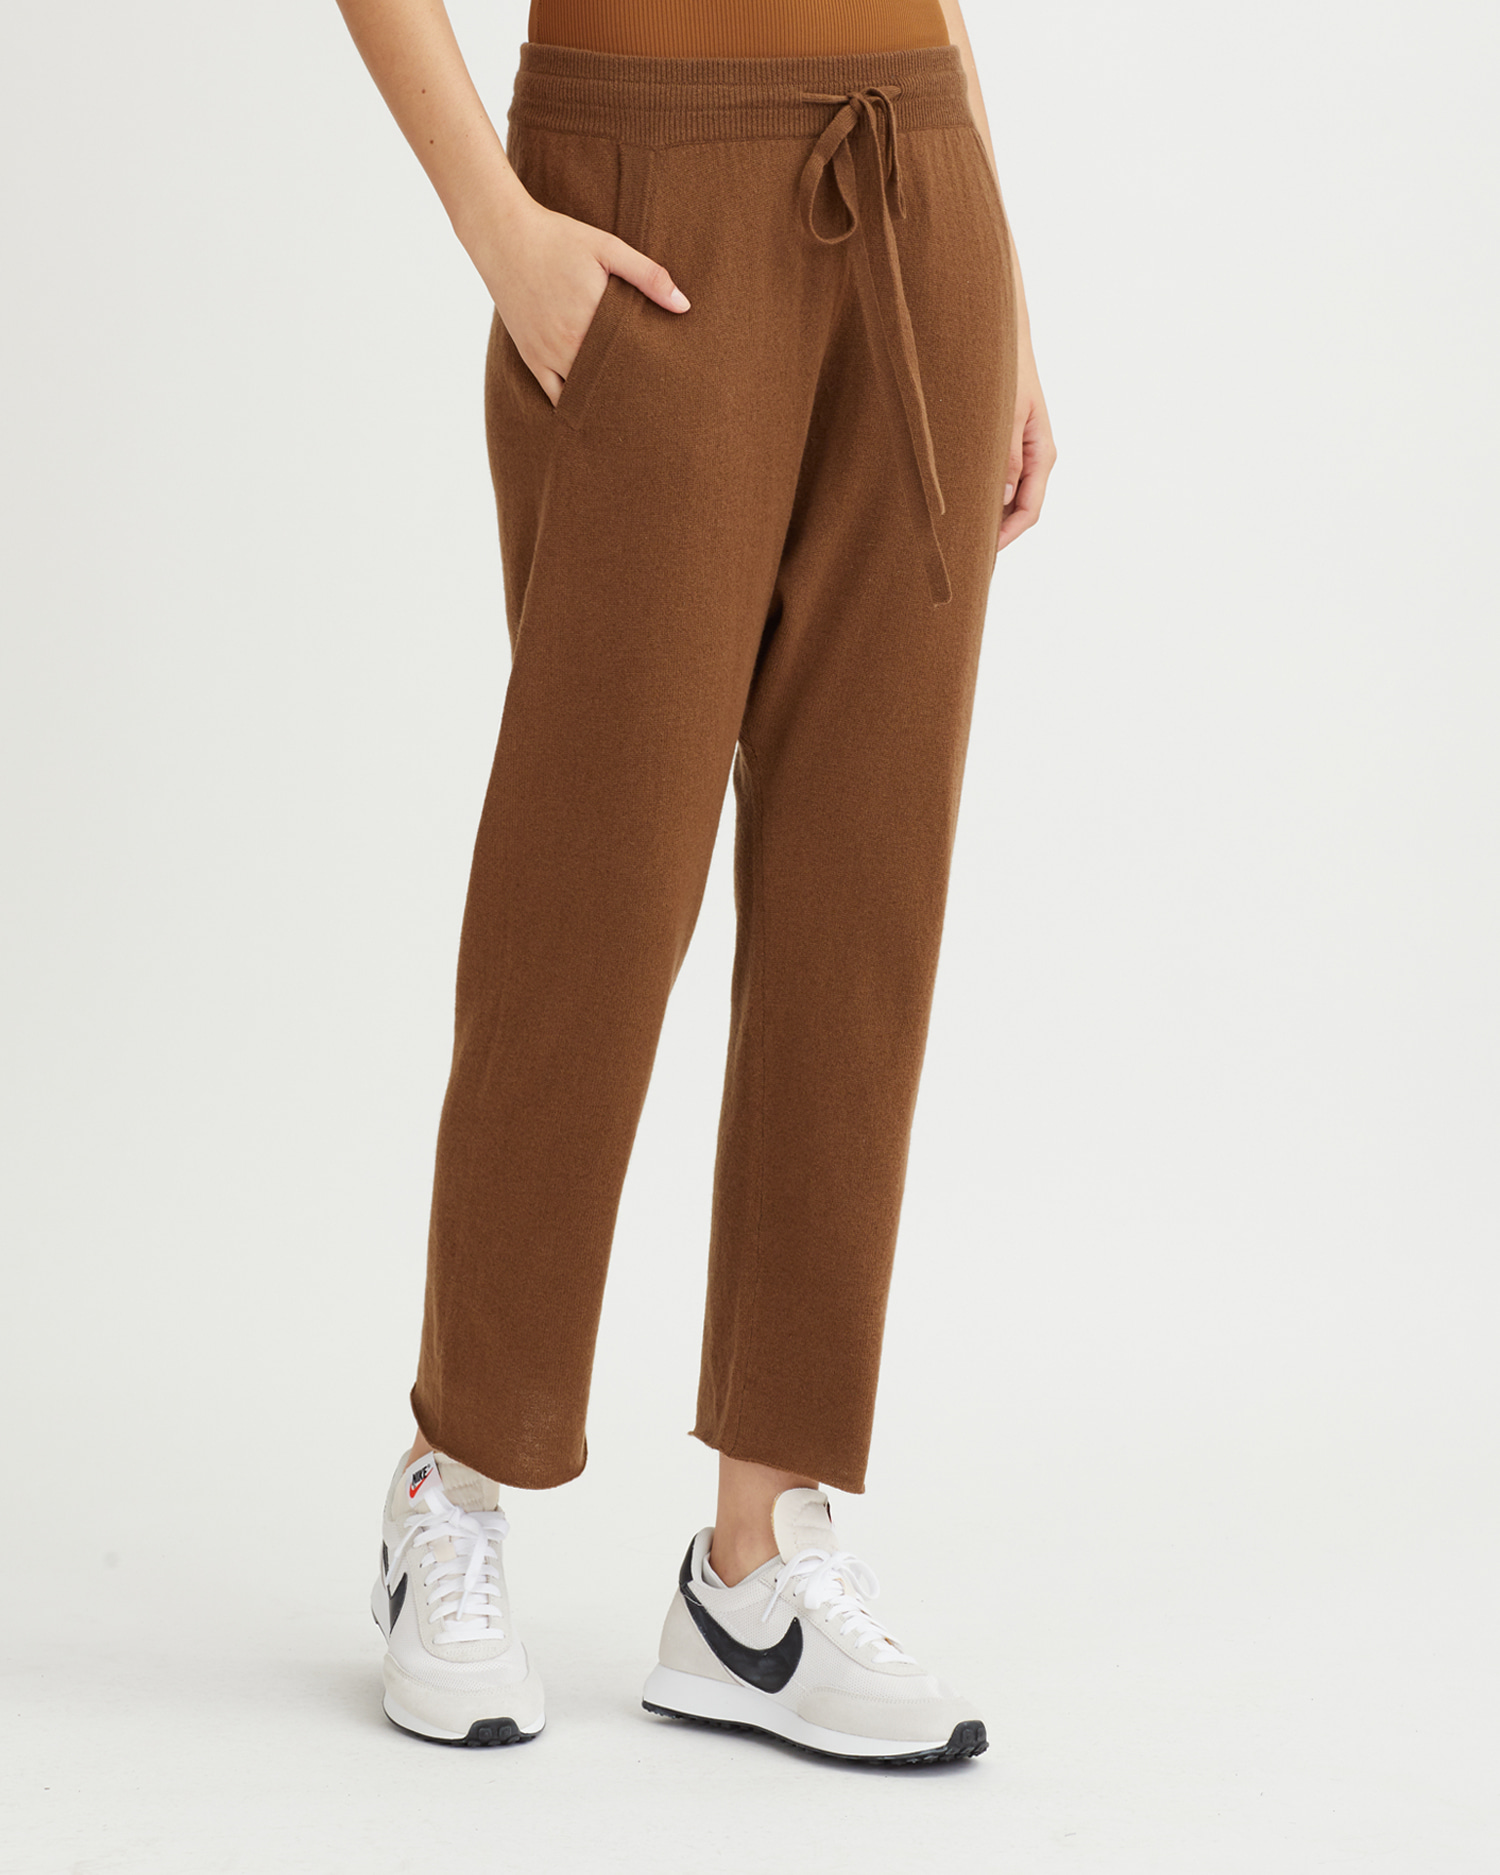 NILA PANTS WALNUT